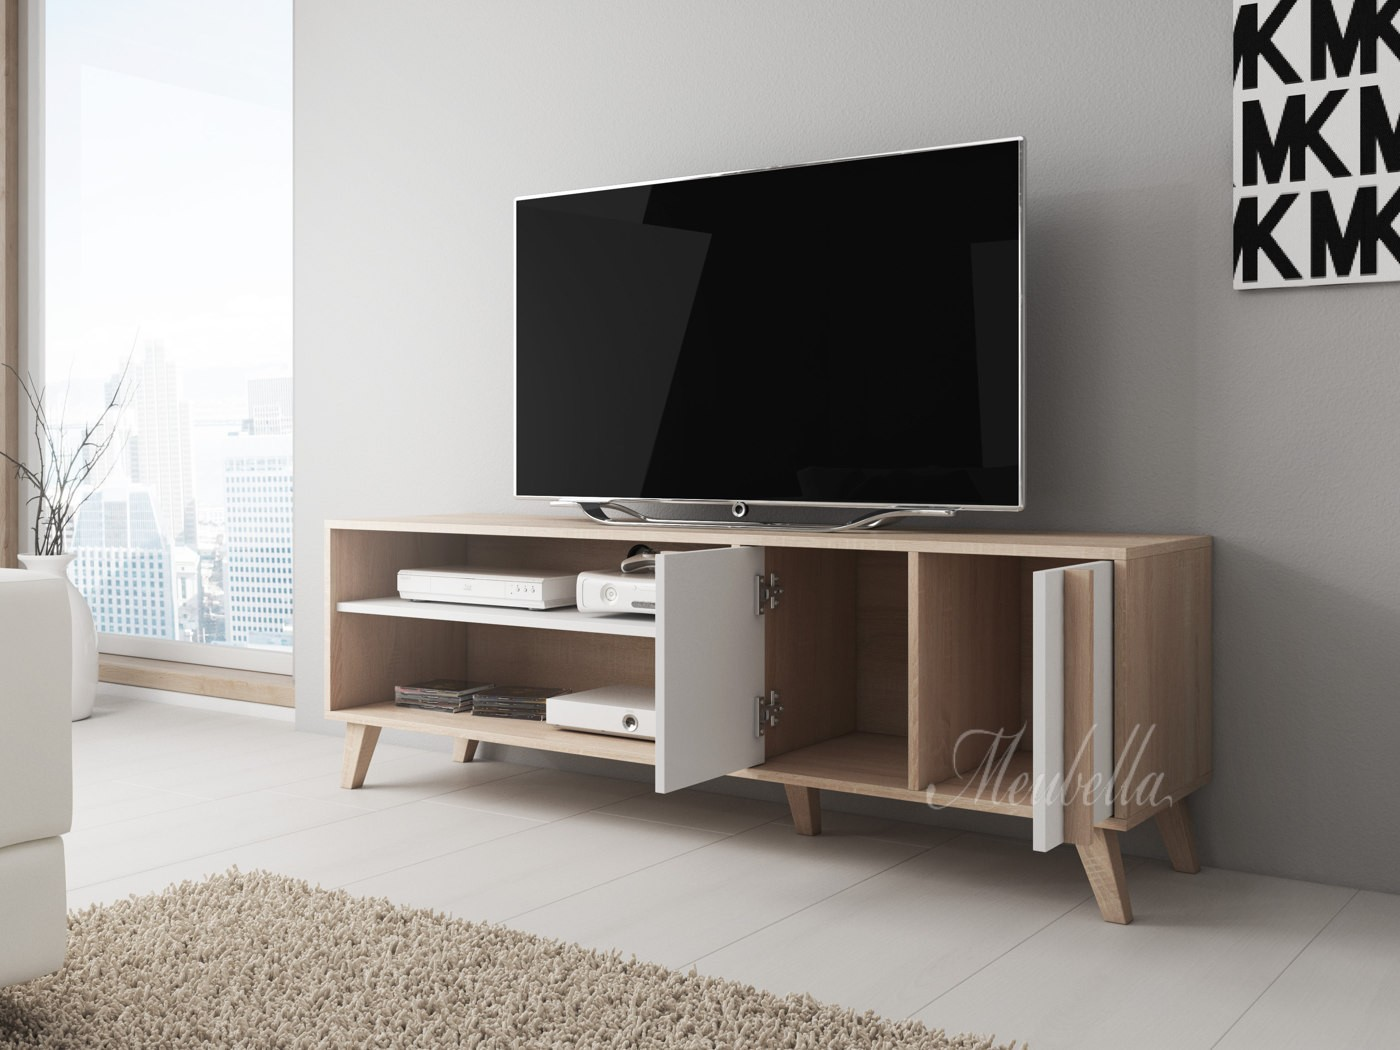 tv meubel mira wit licht eiken 150 cm meubella. Black Bedroom Furniture Sets. Home Design Ideas